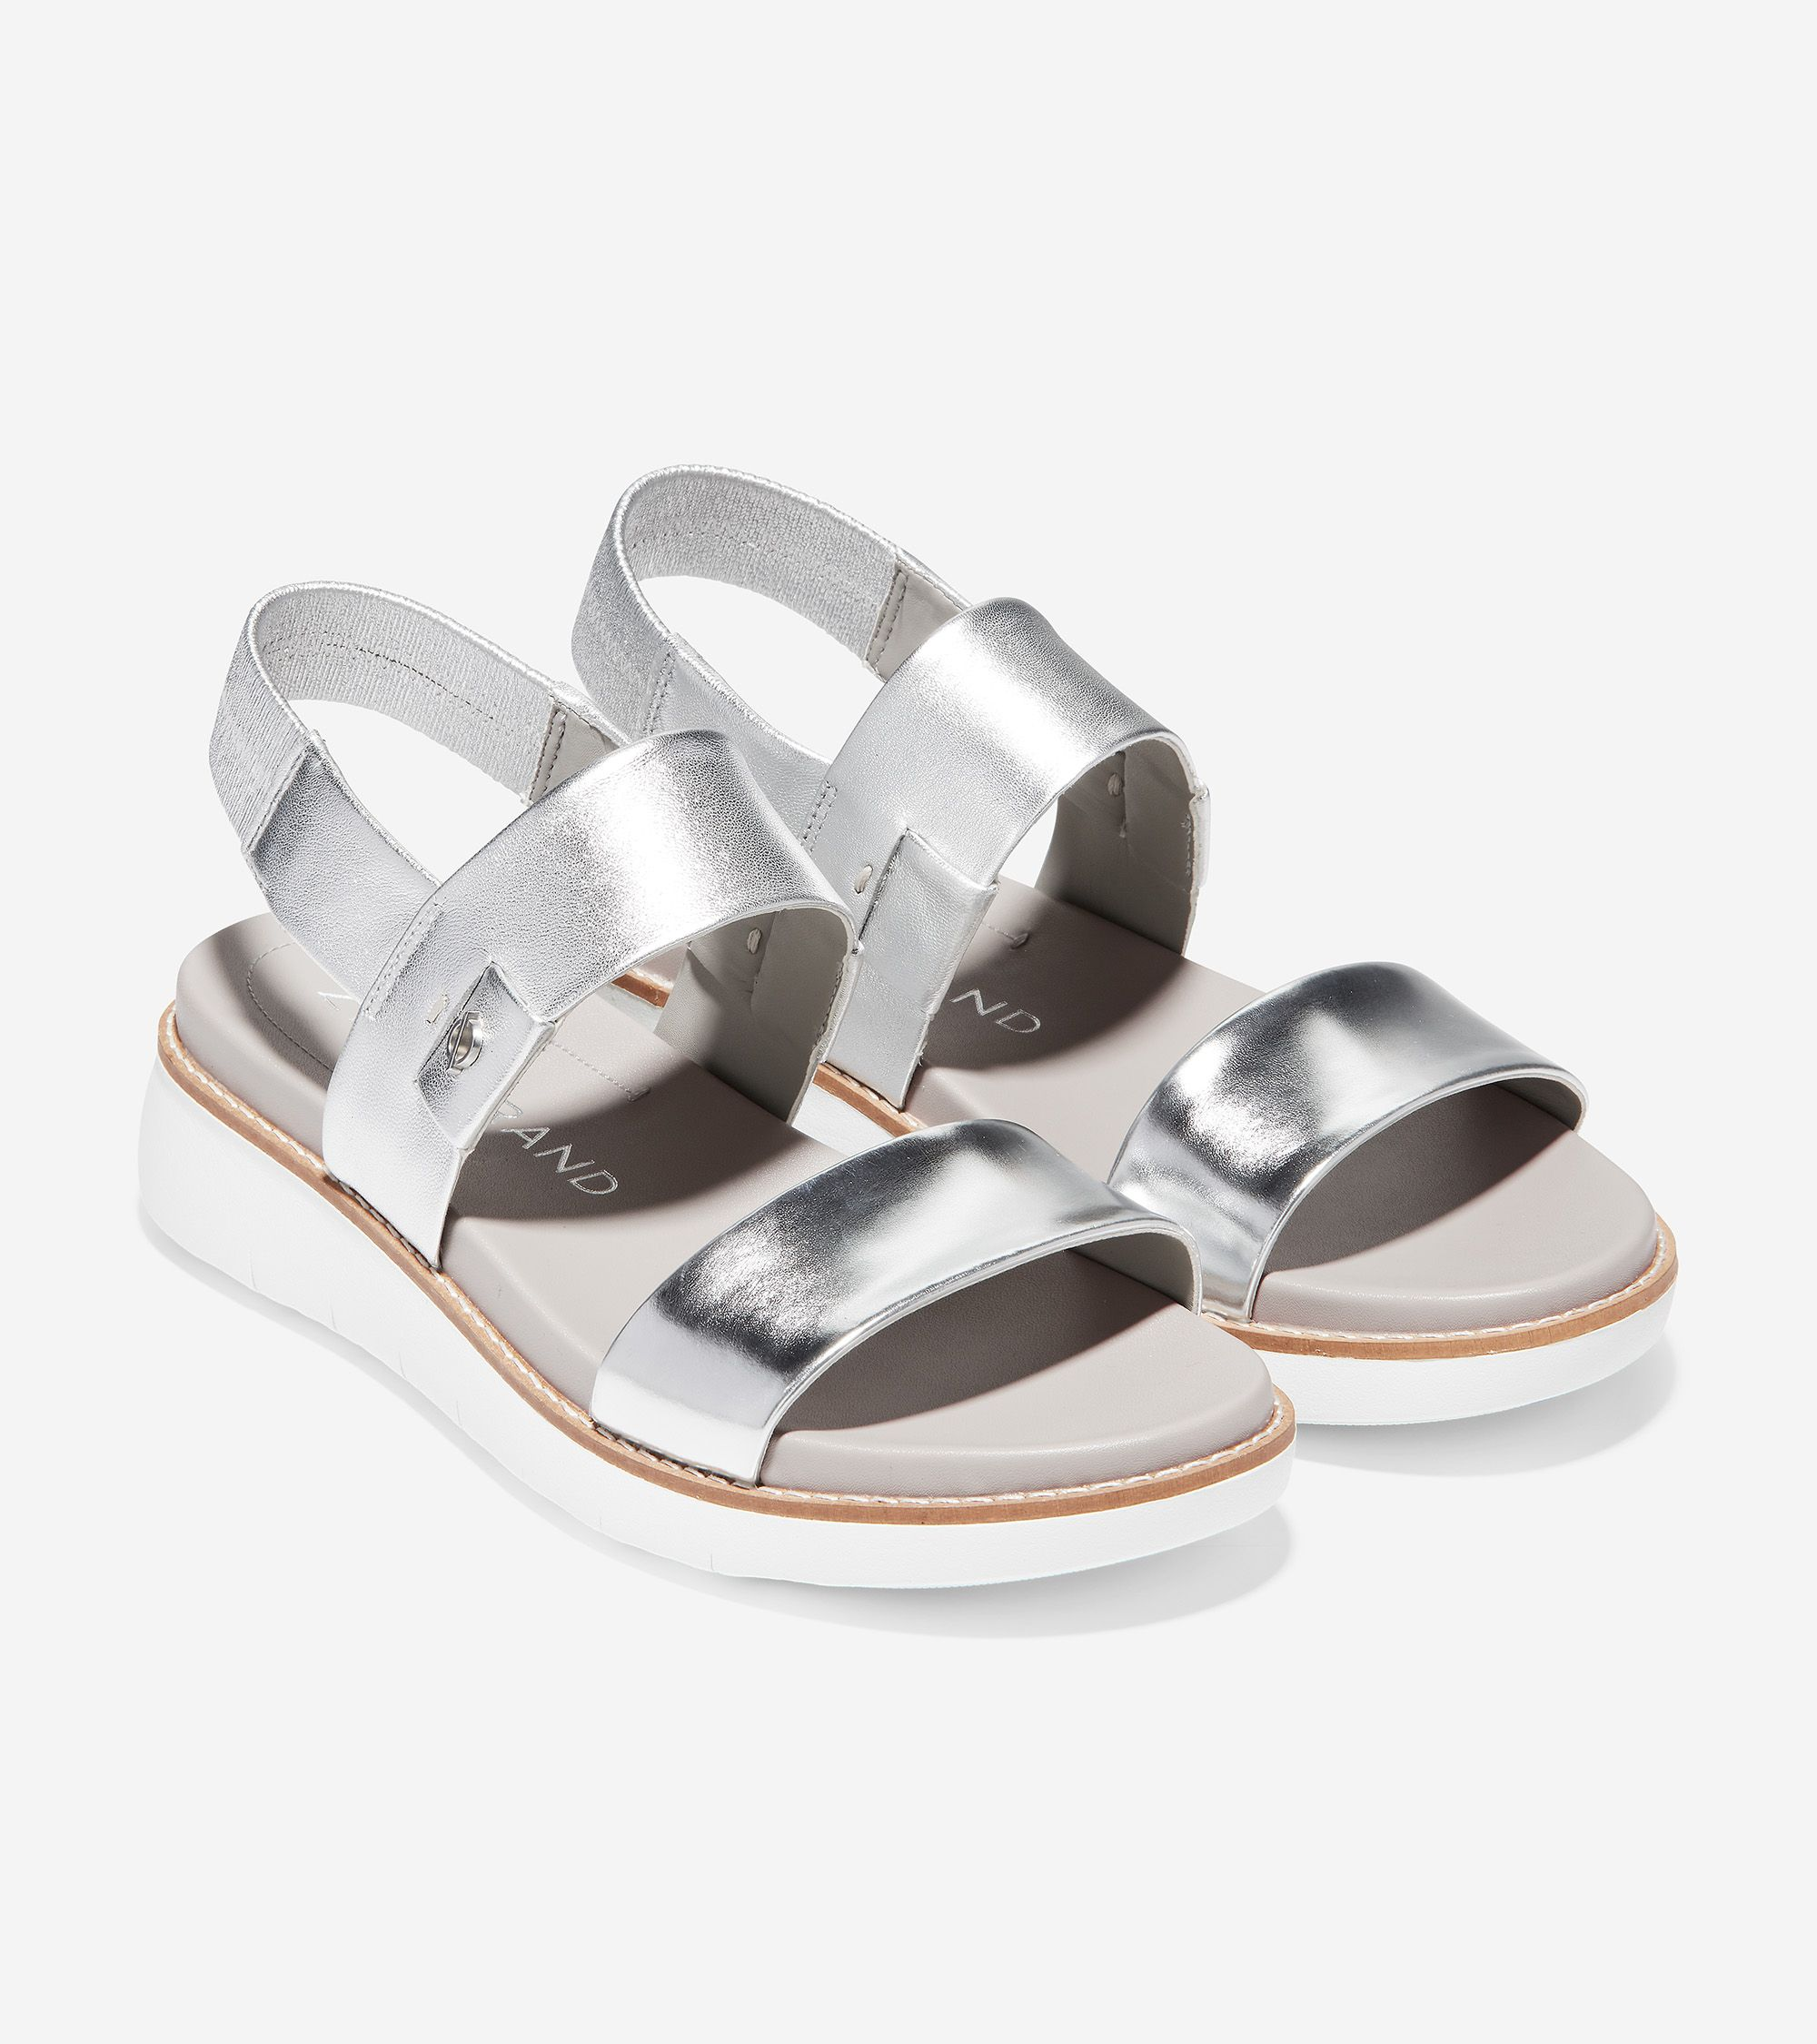 Women S Zerogrand Global Double Band Sandal In Argento Specchio In 2020 Double Band Sandals Double Band Sandals